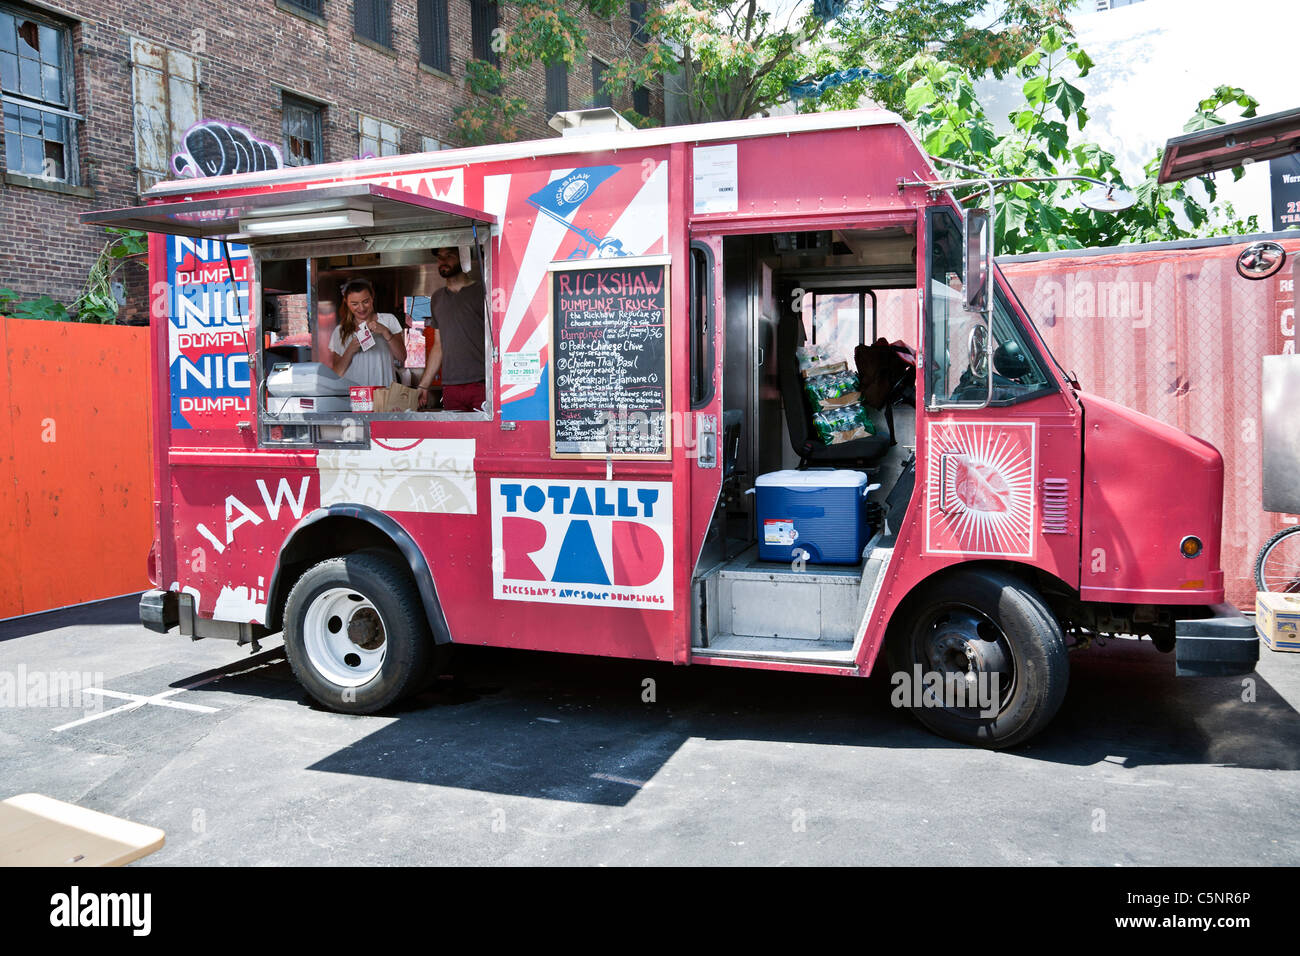 bright pink Thai dumpling food truck parked in lot next to High Line elevated park entrance Chelsea district New - Stock Image